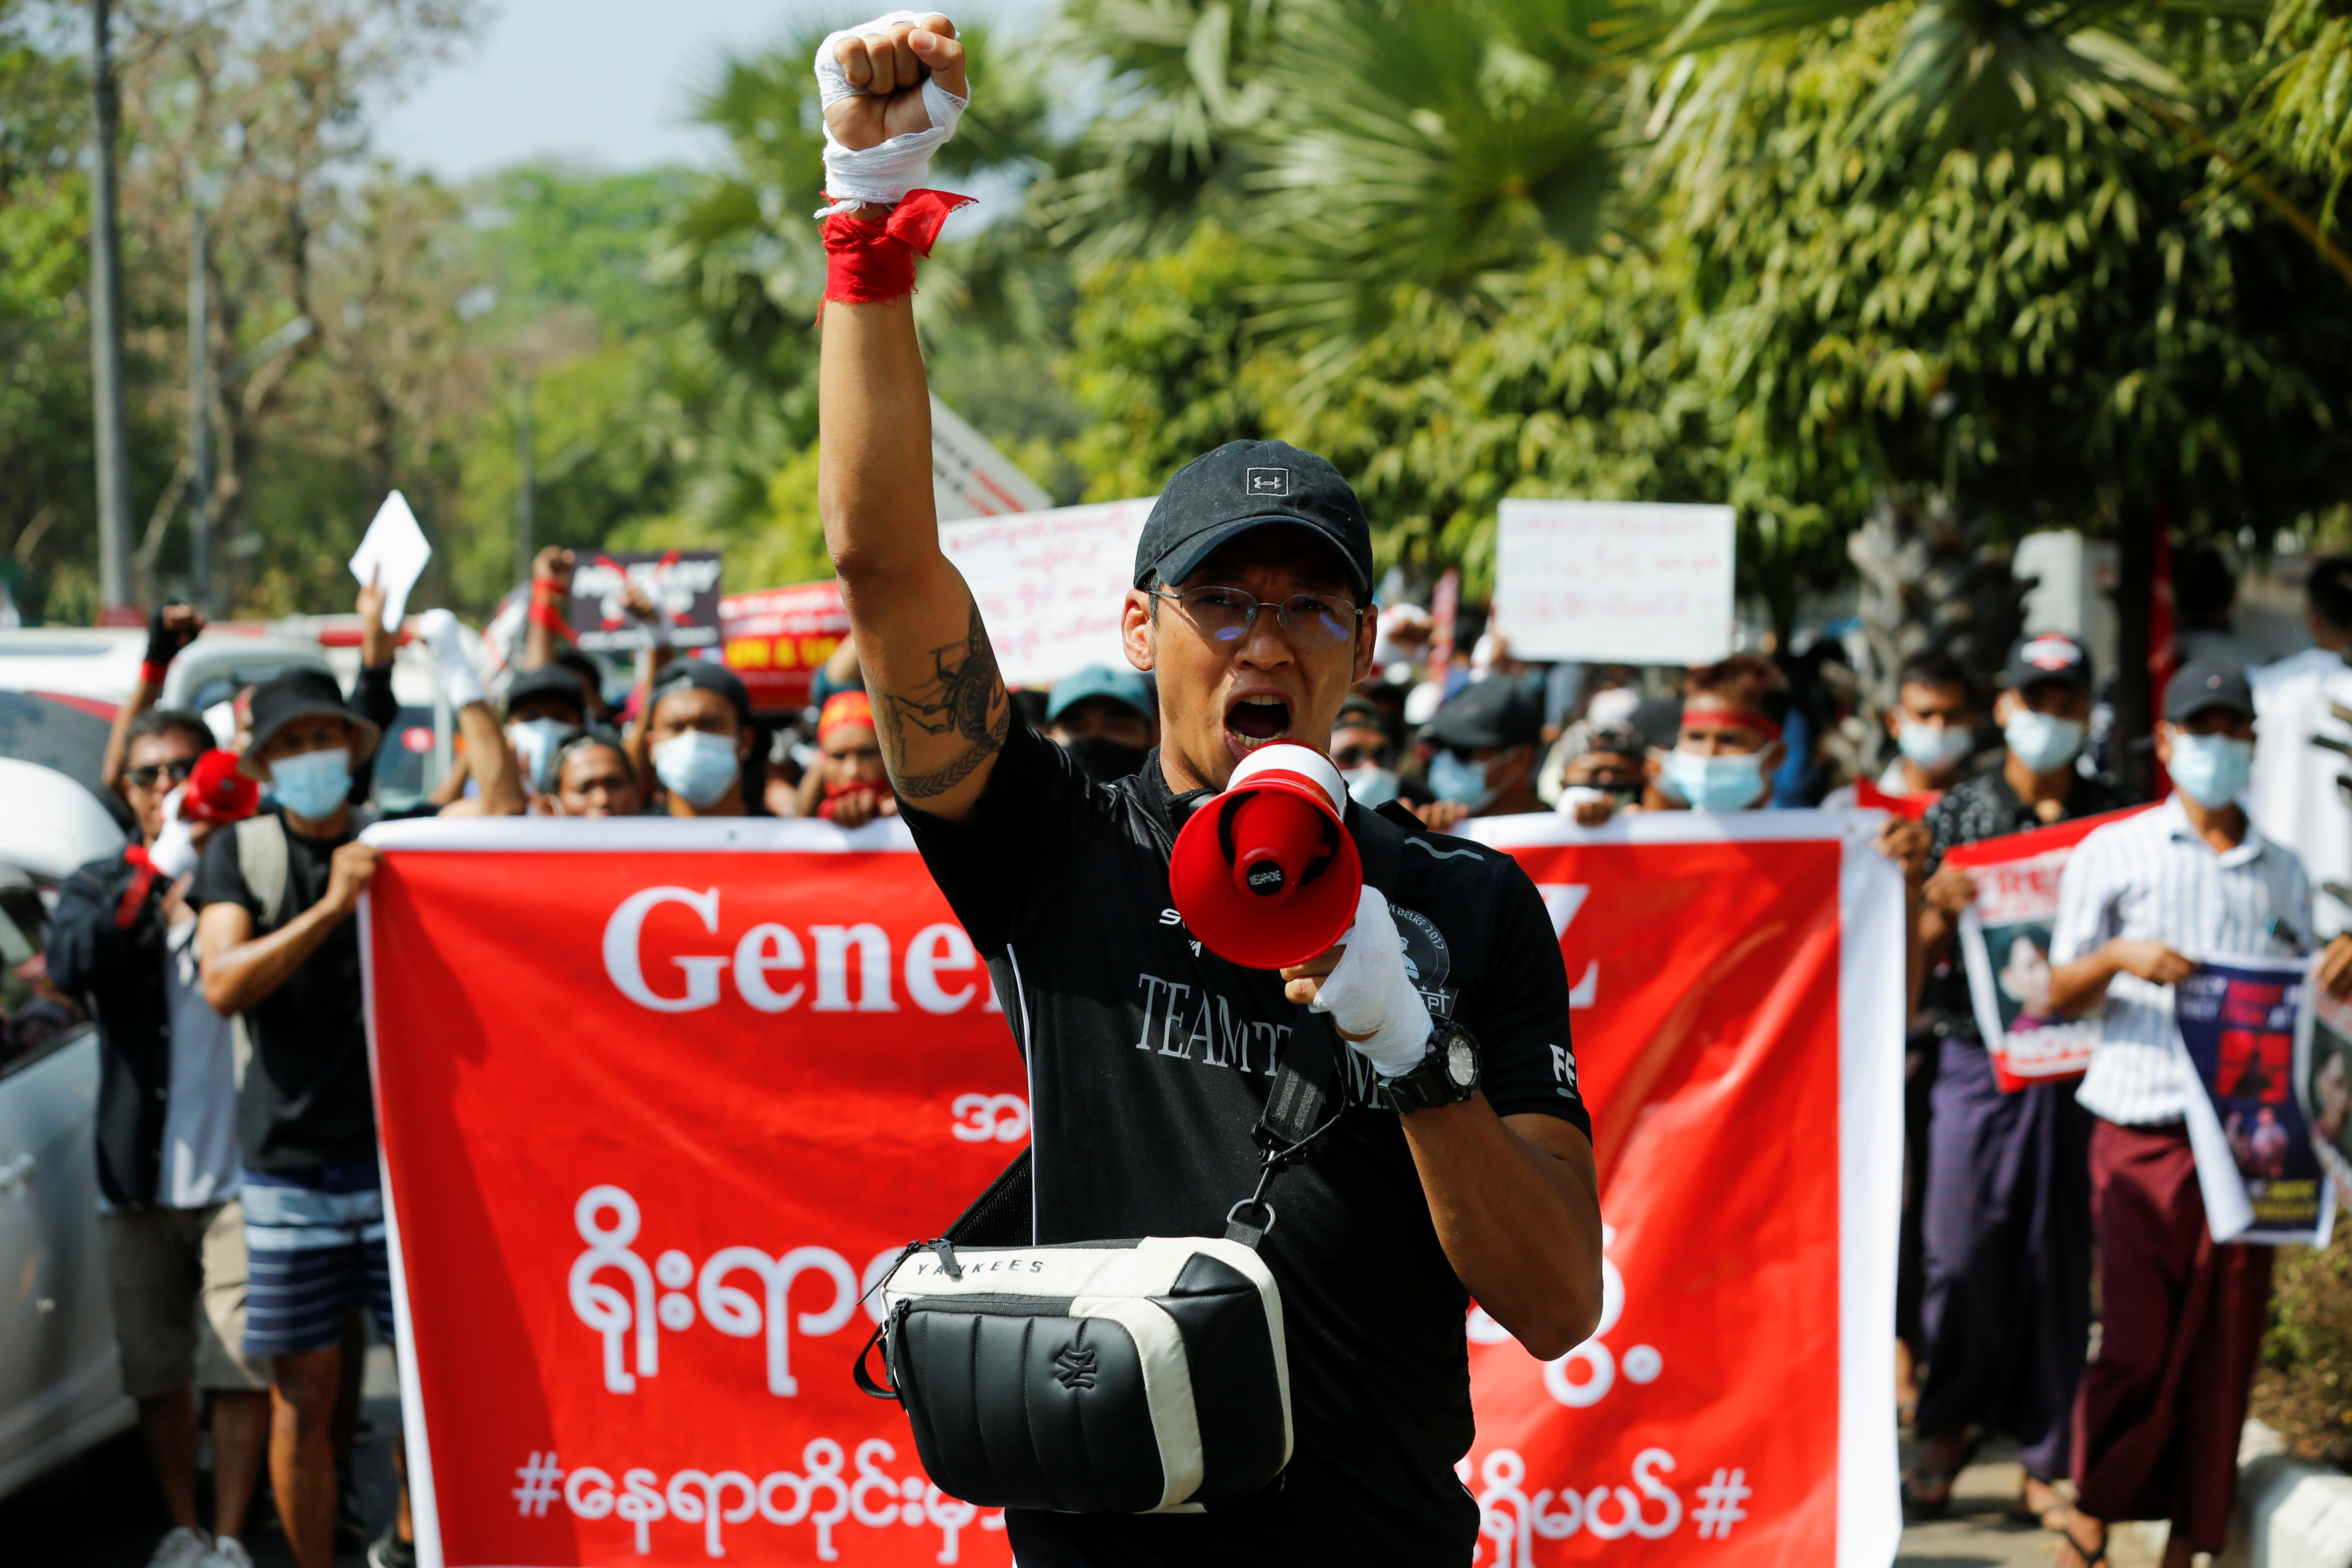 Mixed martial arts fighter Phoe Thaw attends an anti-coup protest in Yangon, Myanmar, February 16, 2021. Picture taken February 16, 2021. REUTERS/Stringer